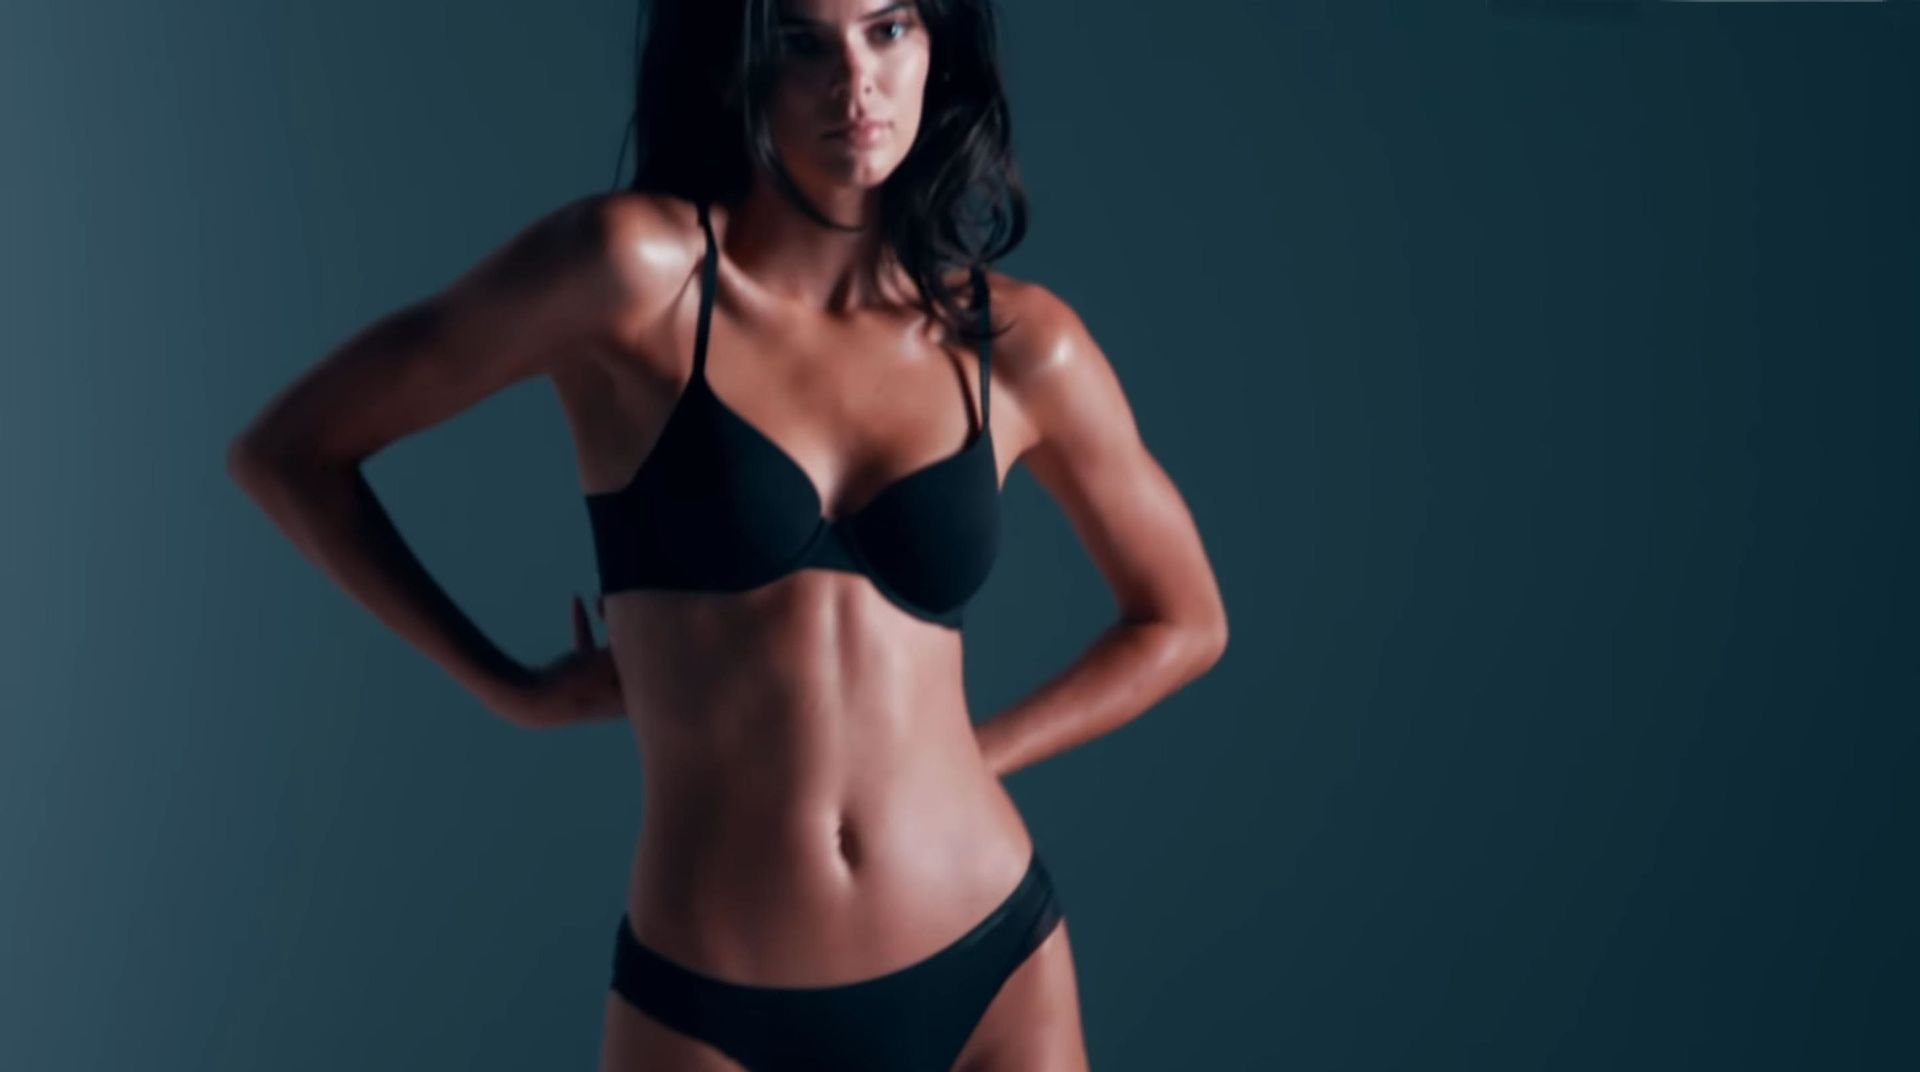 Kendall Jenner Shows Off Her Stunning Figure For Calvin Klein Spring 2020 Campaign 0002